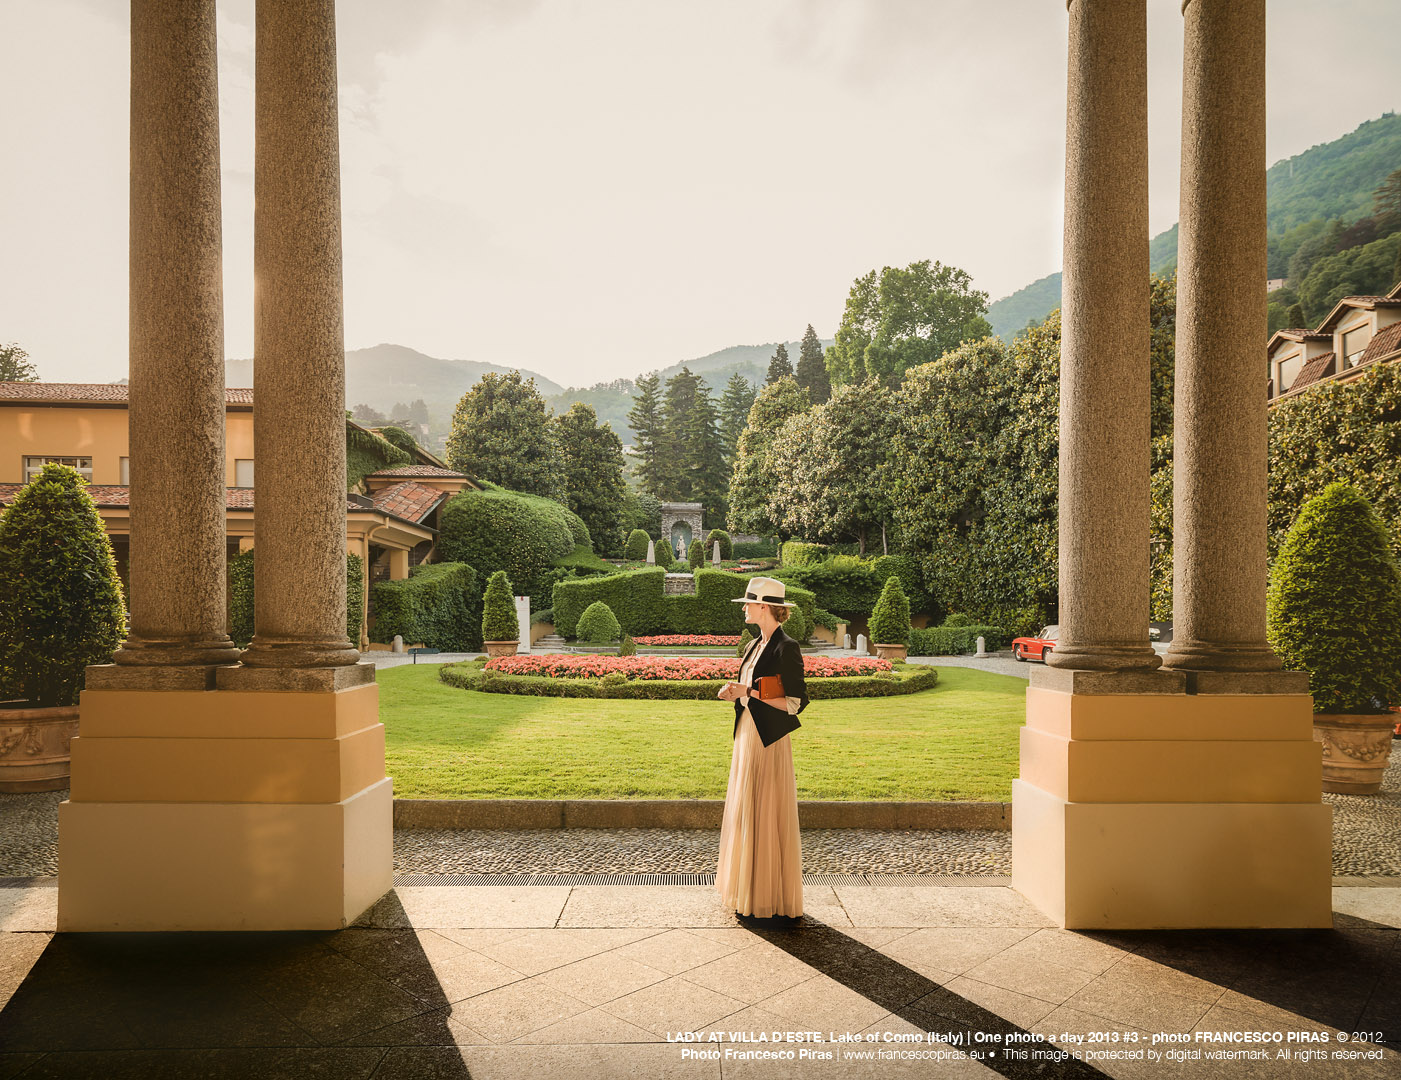 LADY AT VILLA D'ESTE, Lake of Como (Italy) | One photo a day 2013 #3 - photo FRANCESCO PIRAS © 2012. Photo Francesco Piras | www.francescopiras.eu • This image is protected by digital watermark. All rights reserved.